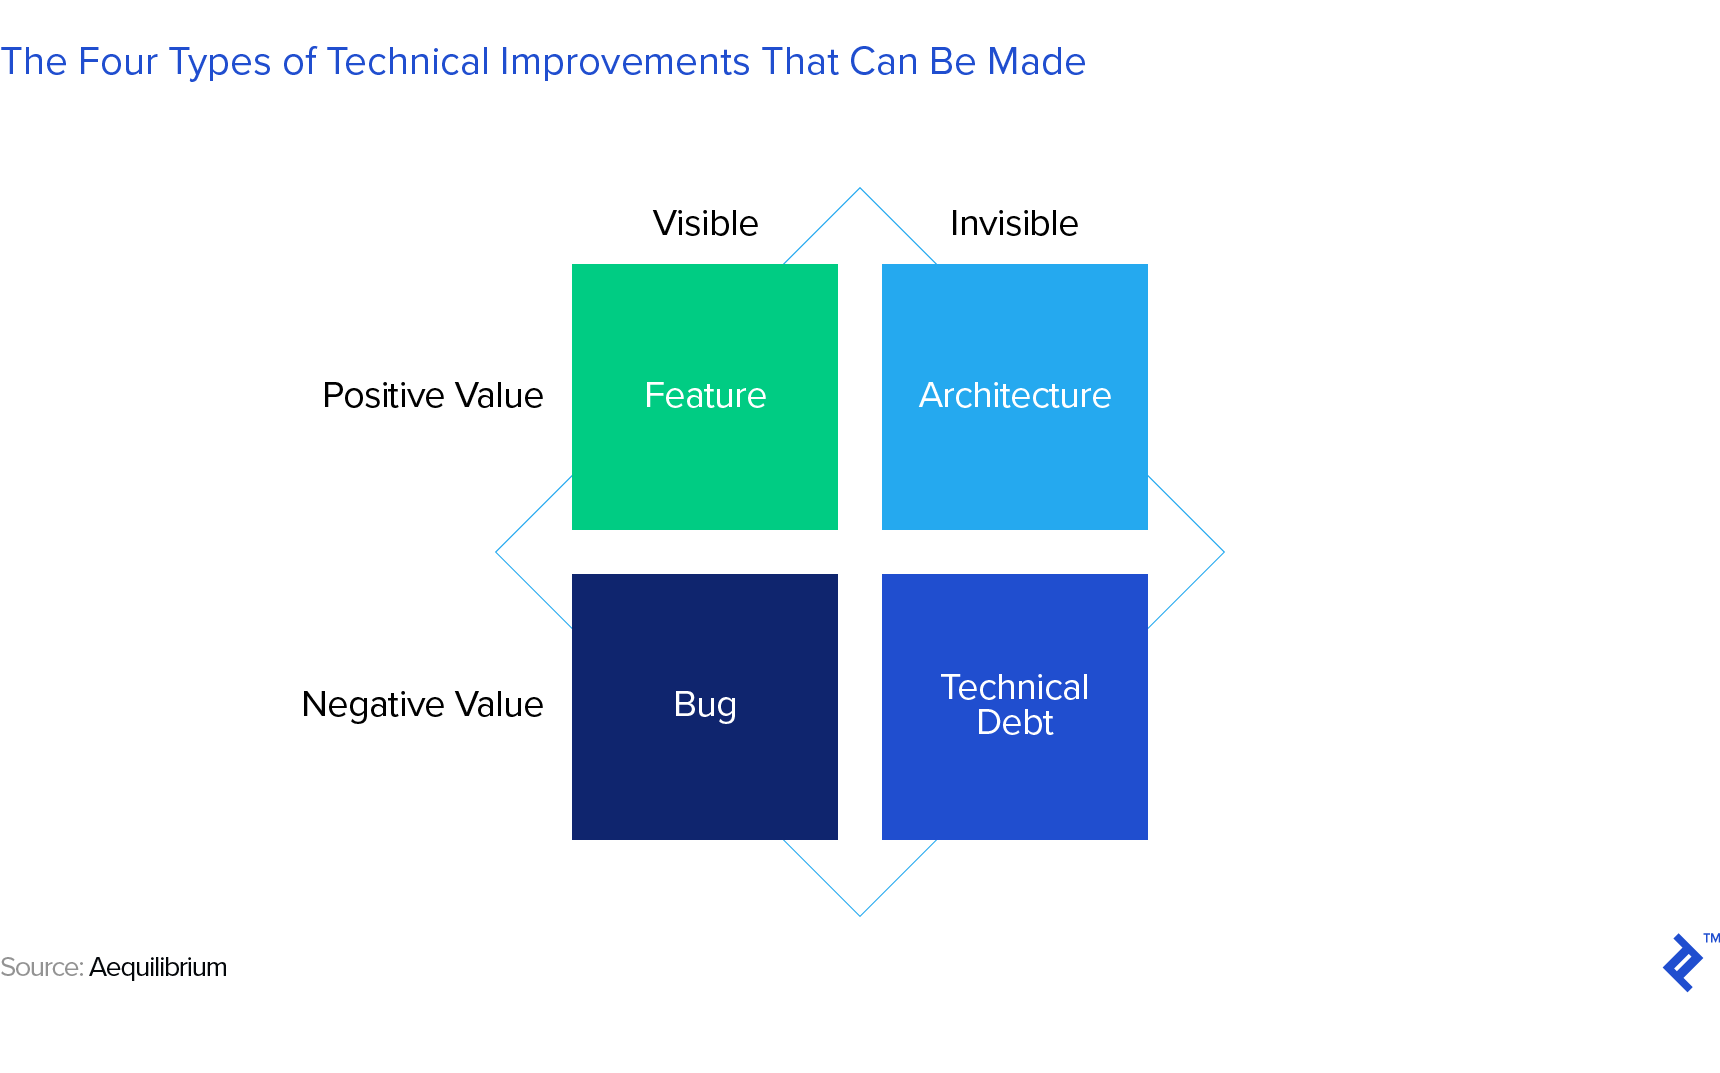 a visual depiction of a matrix chart organizing the four types of technical improvements that can be made